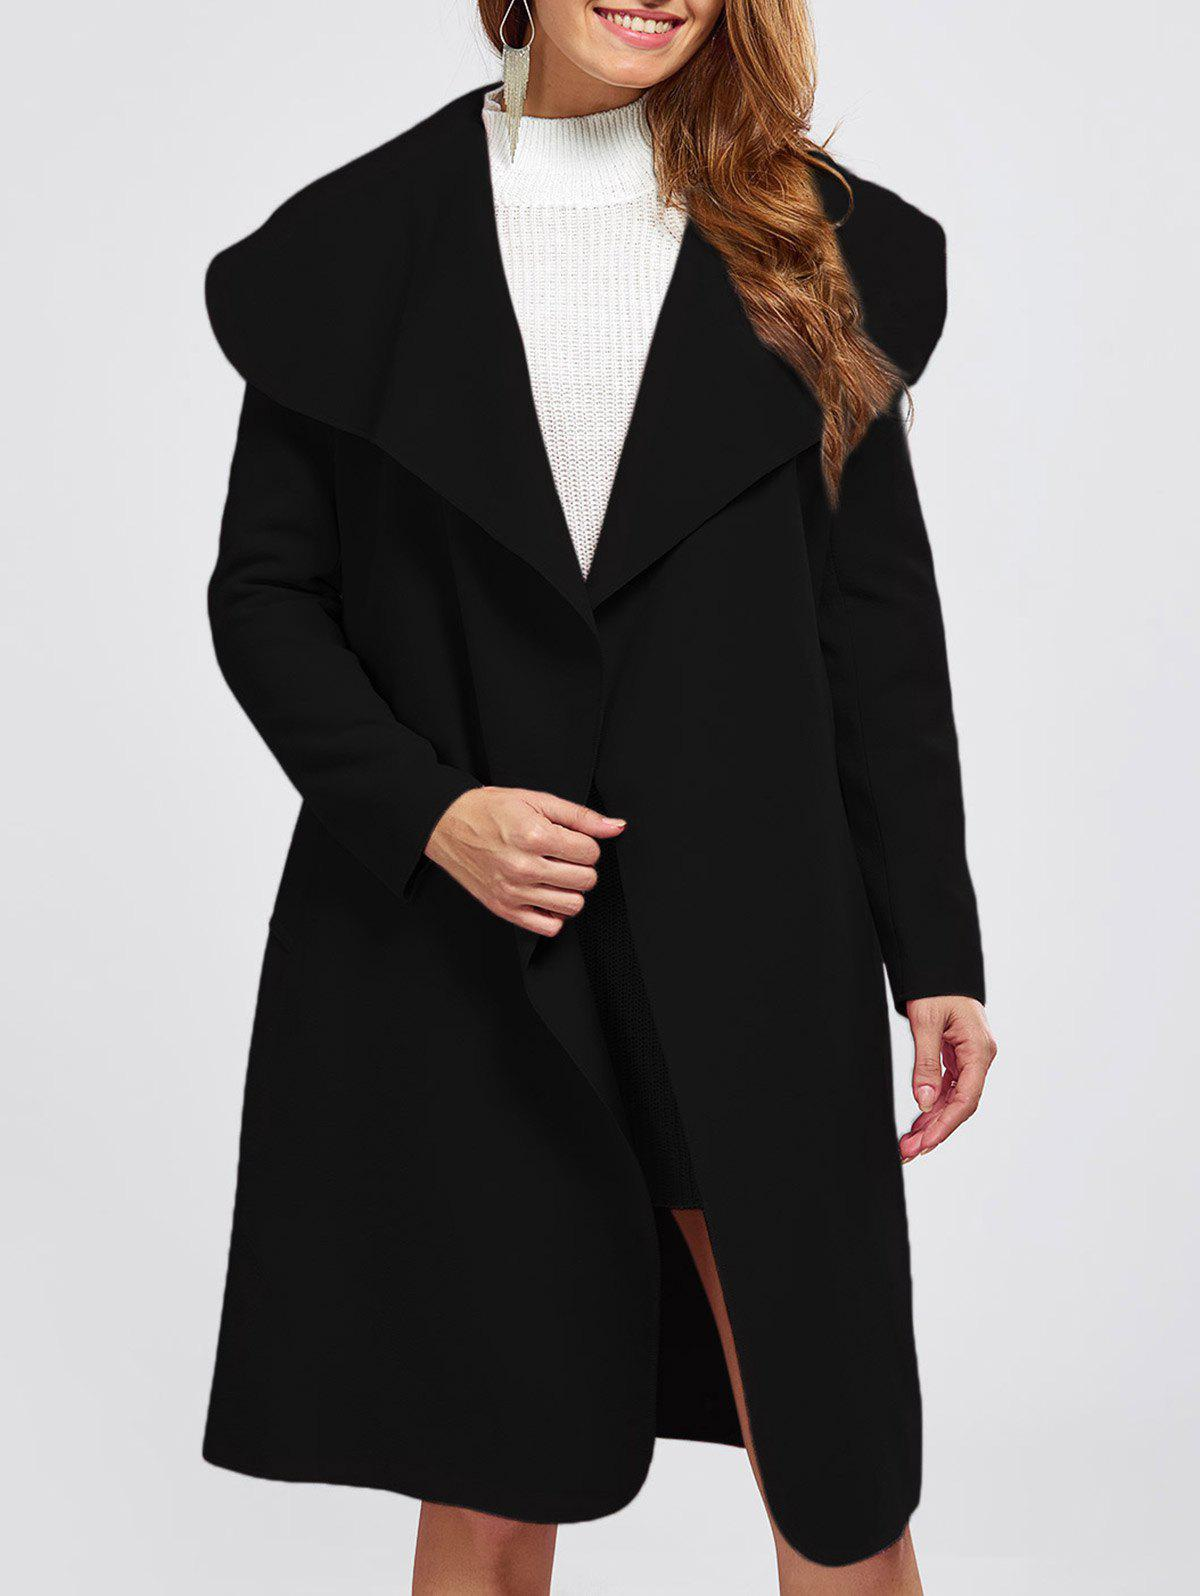 41 Off 2019 Shawl Collar Wool Blend Belted Wrap Coat In